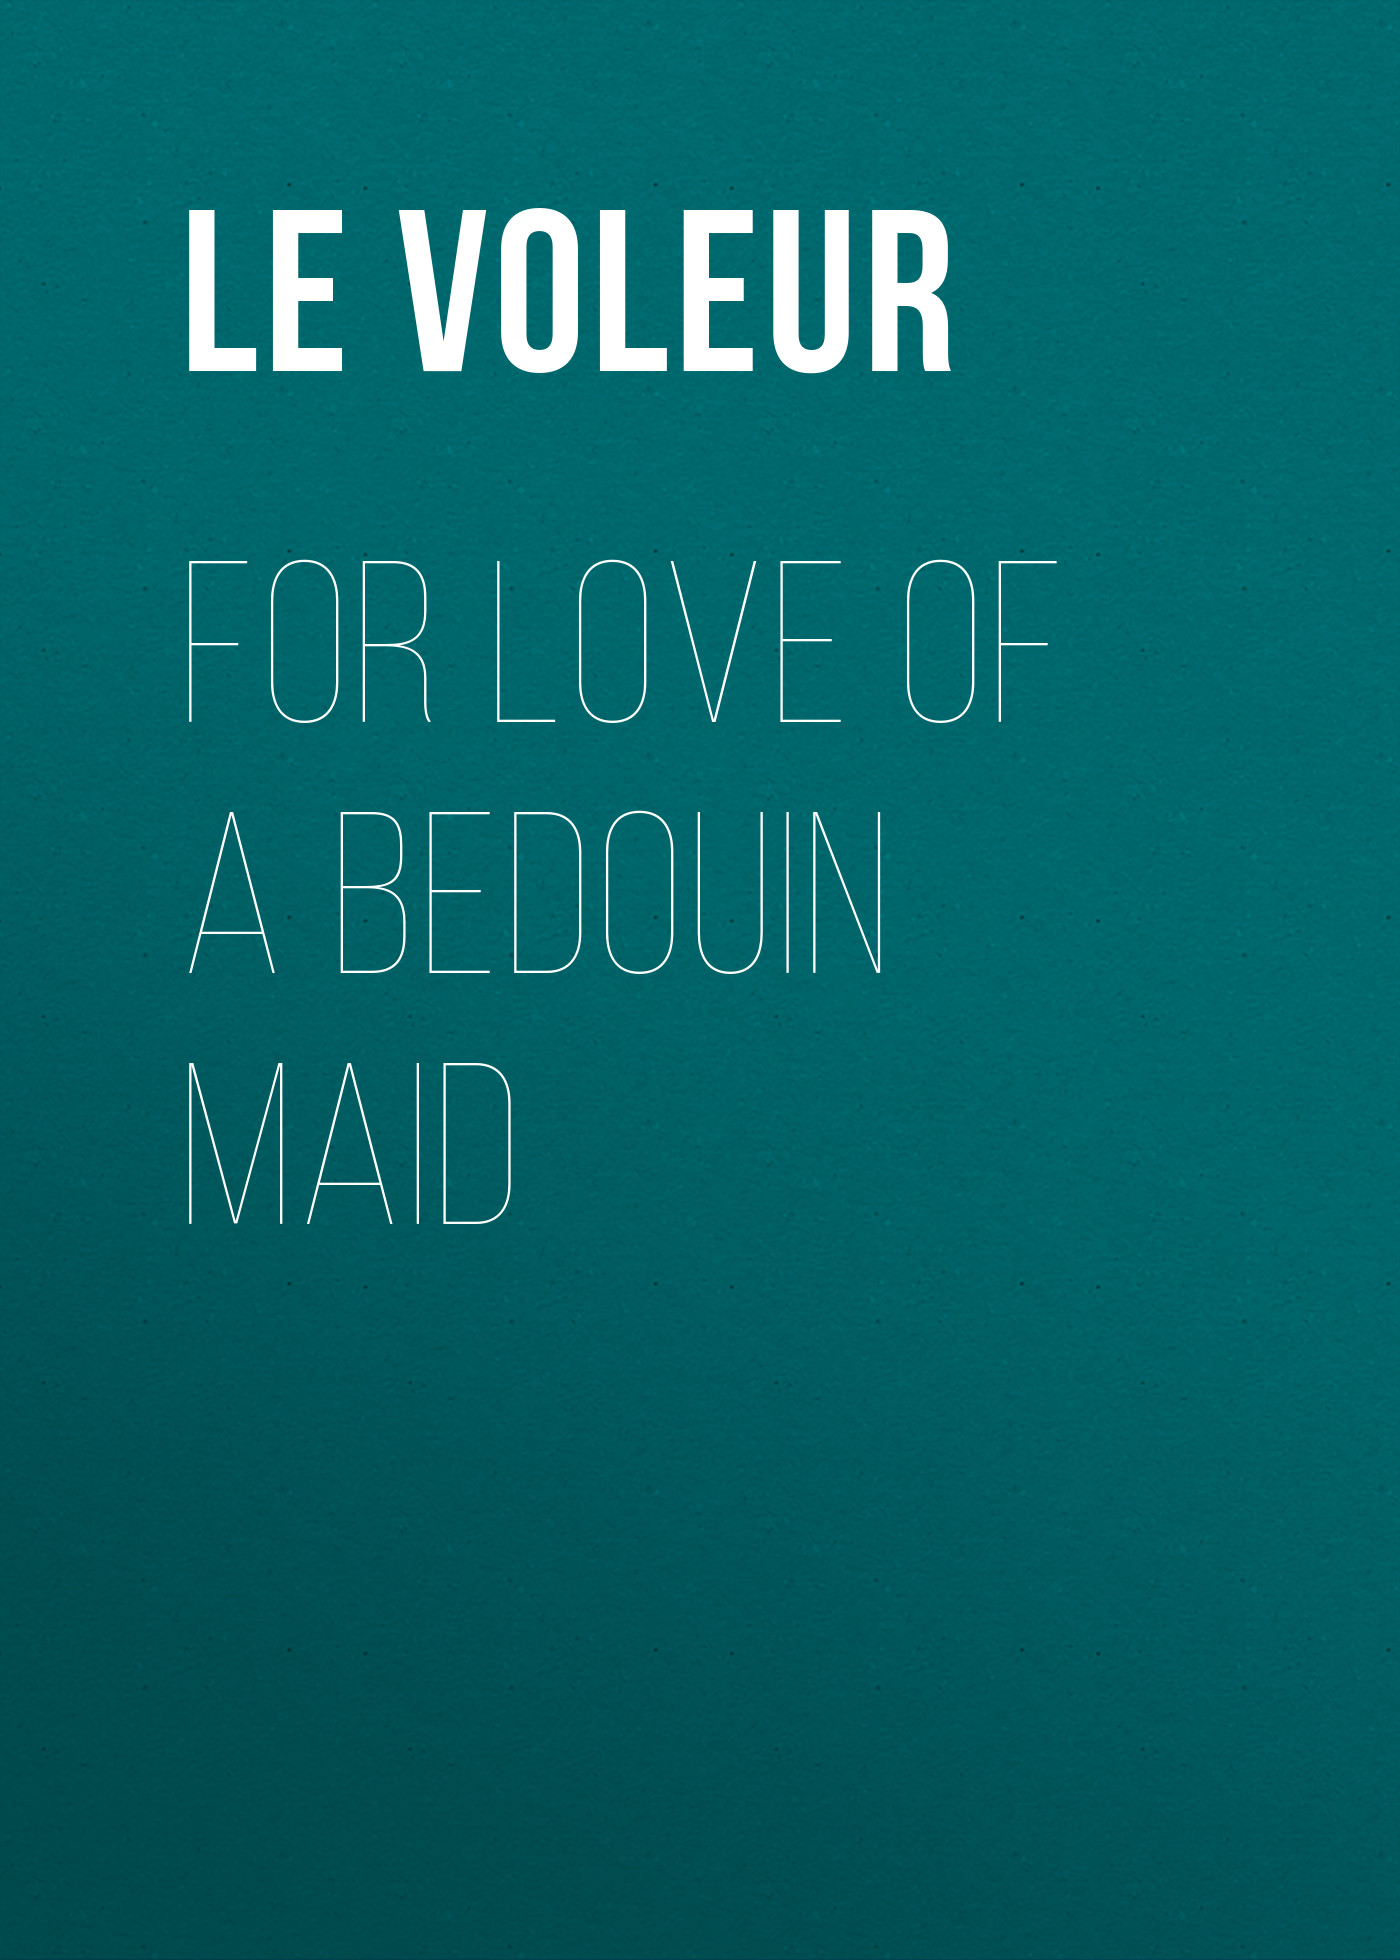 Le Voleur For Love of a Bedouin Maid a taste for love